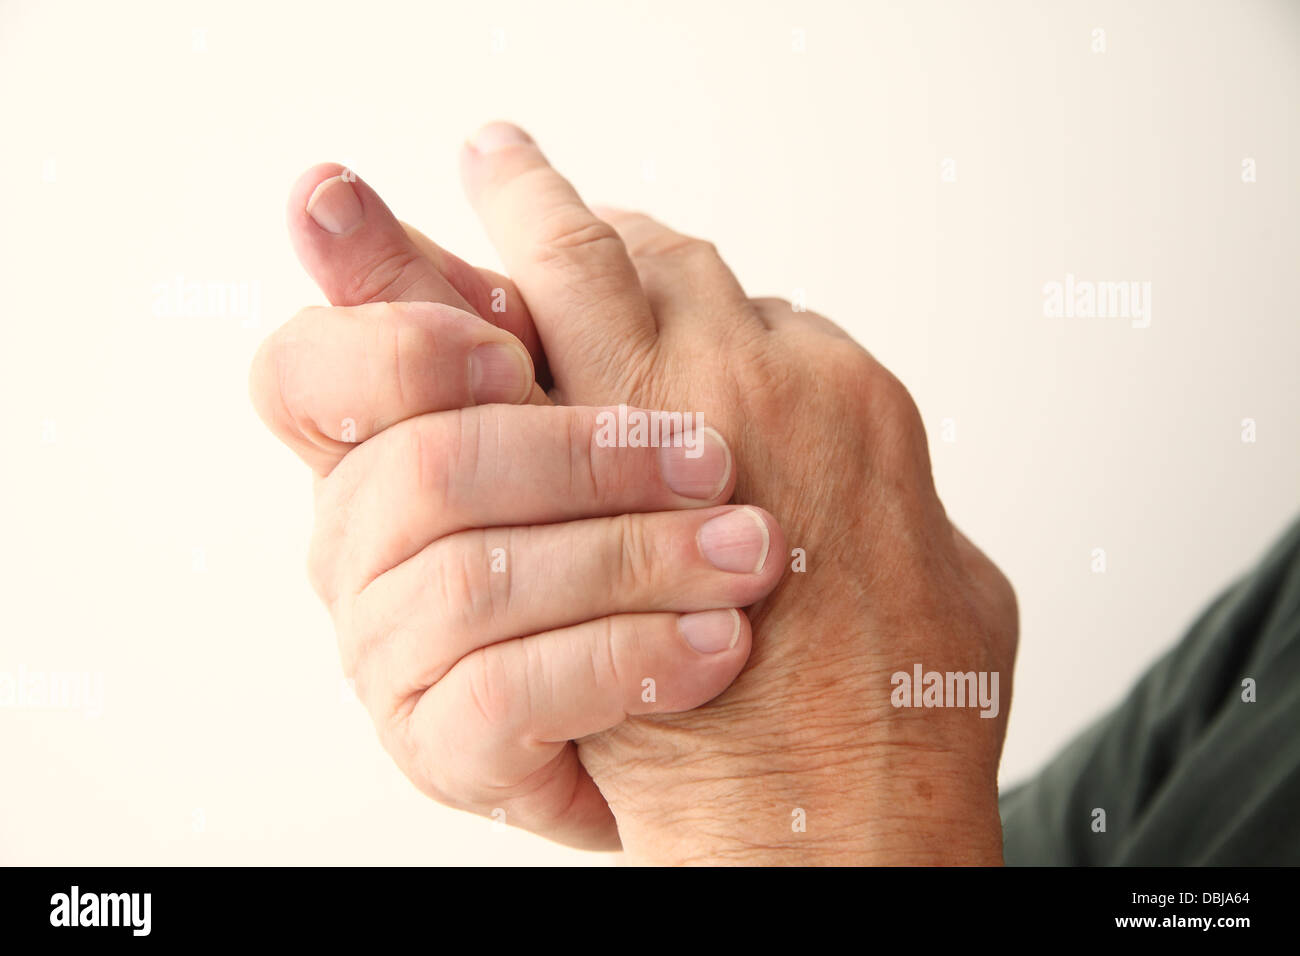 closeup of man with an aching little finger - Stock Image